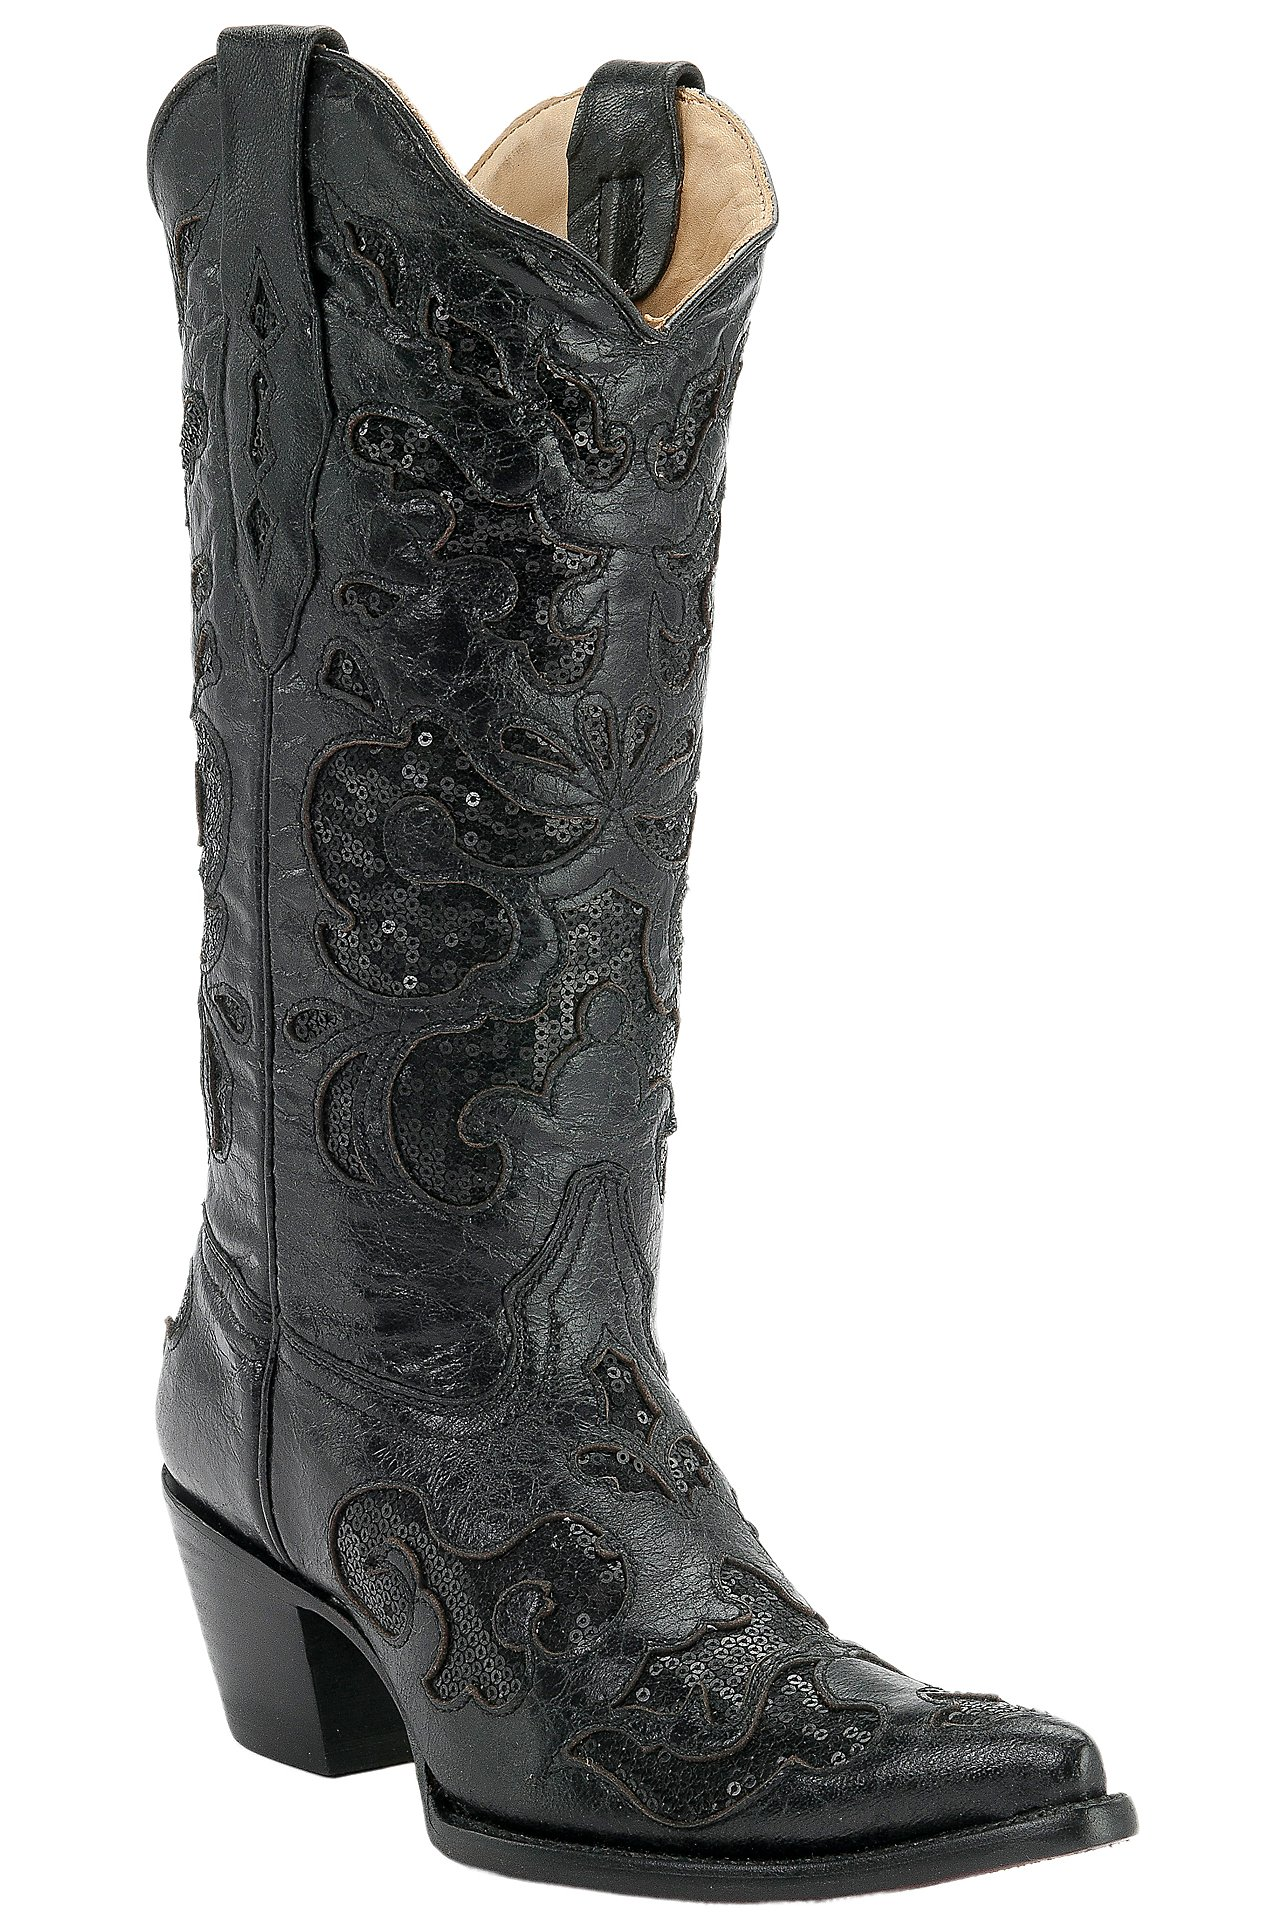 Corral Ladies Black w/ Black Sequined Inlay Pointed Toe Western ...